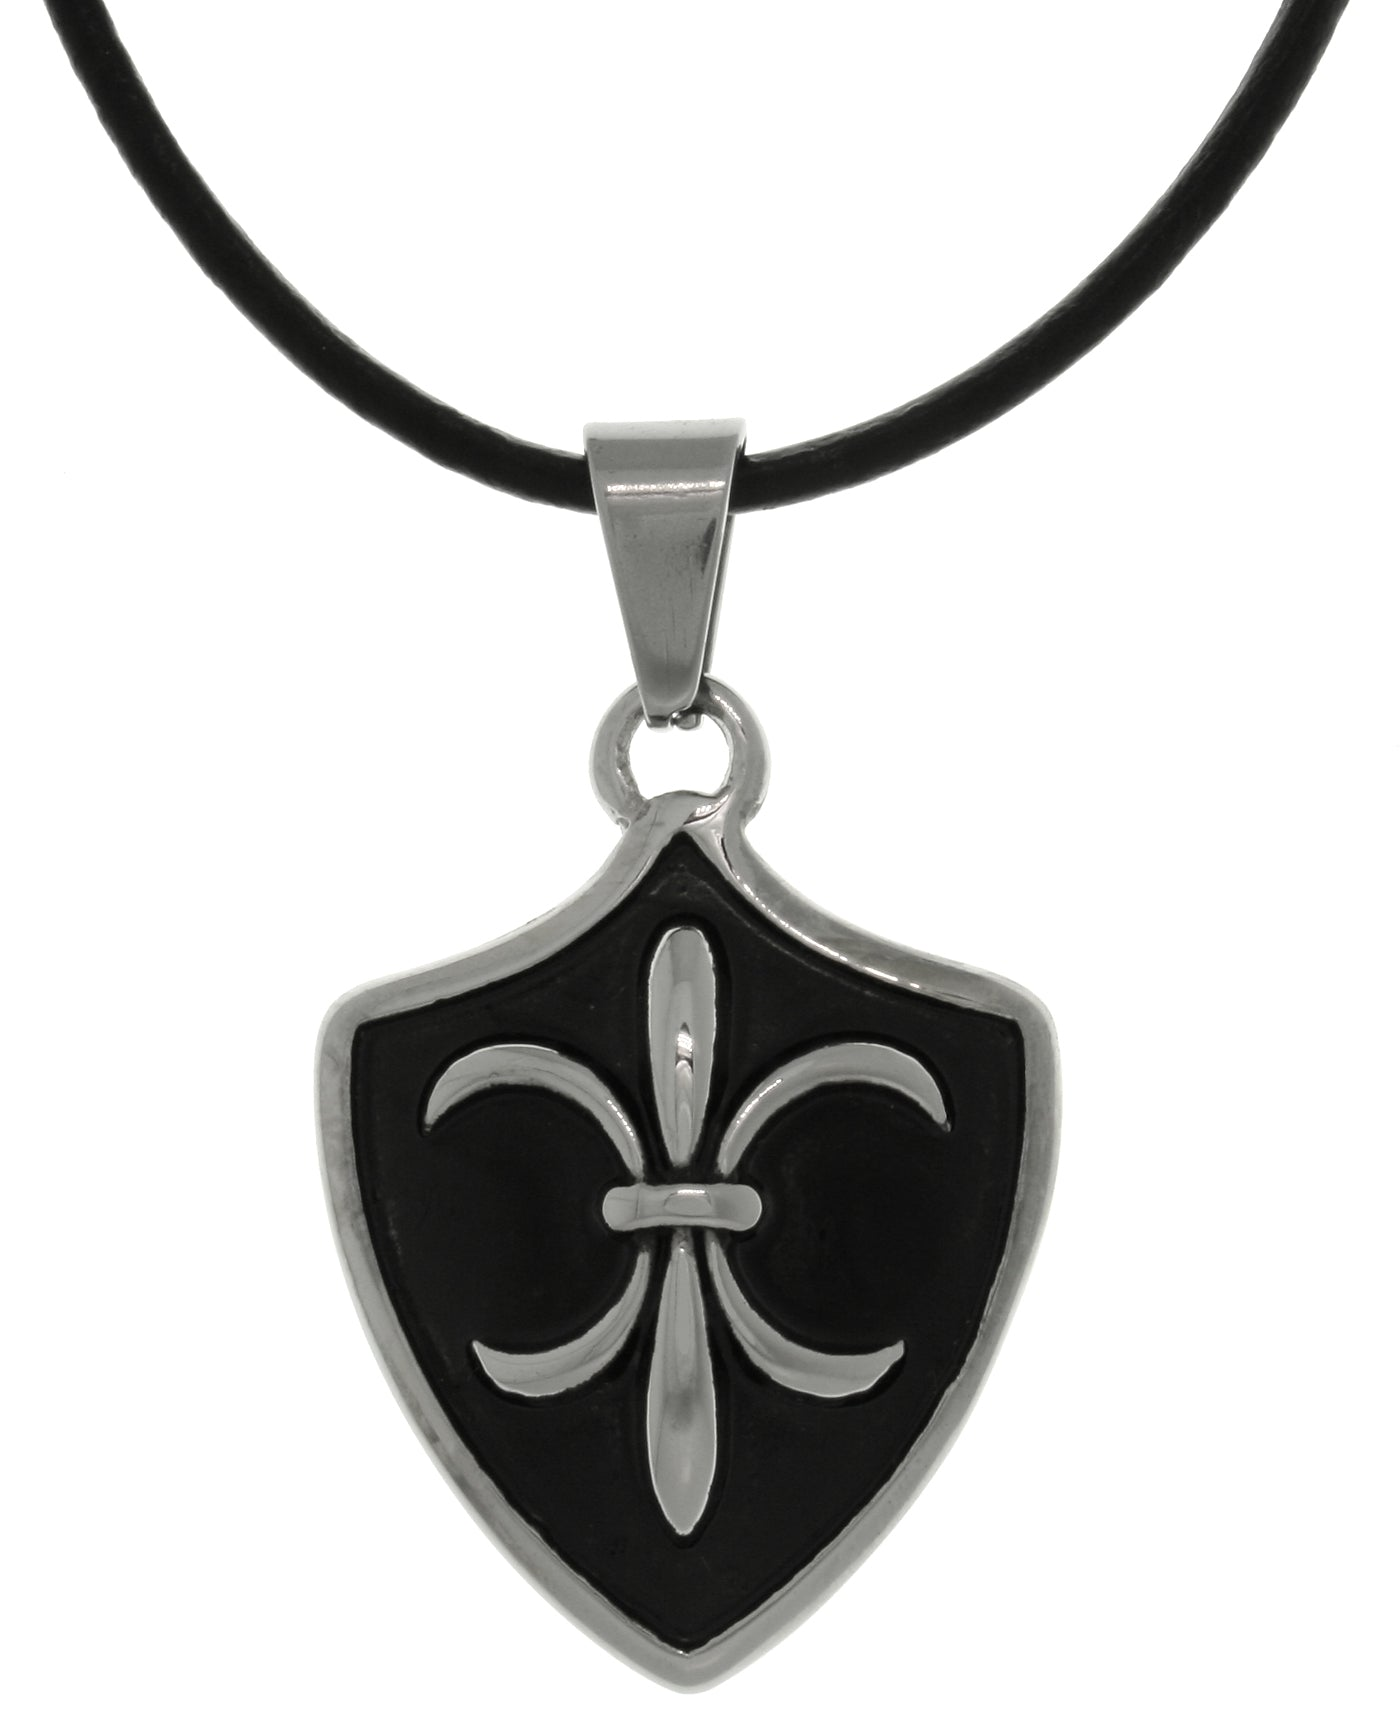 pendant necklace sale l black lion good underground san sterling in royal silver v necklaces for id condition leather francisco jewelry img